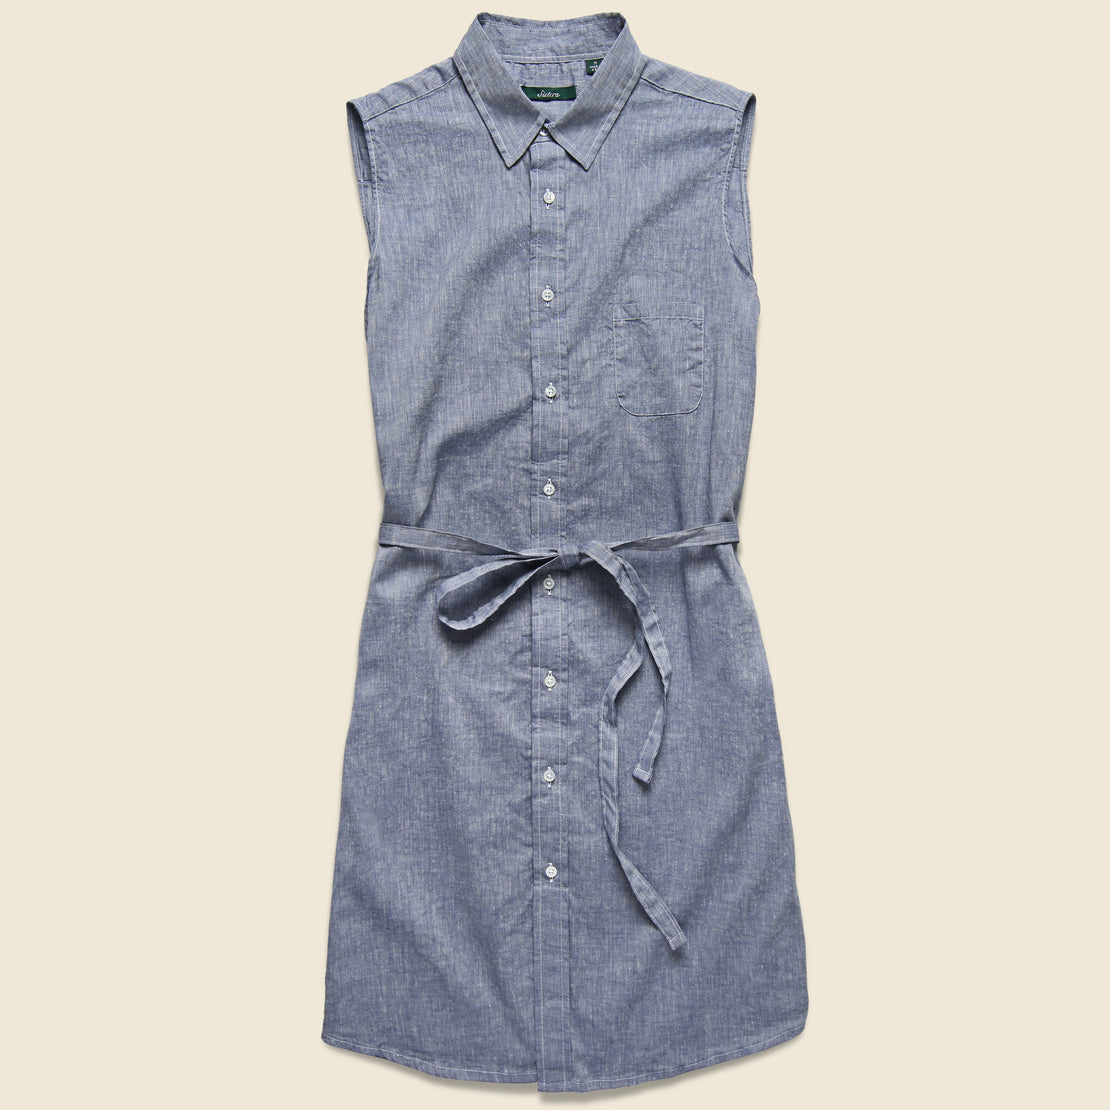 Gitman Vintage Sleeveless Shirt Dress - Blue Chambray